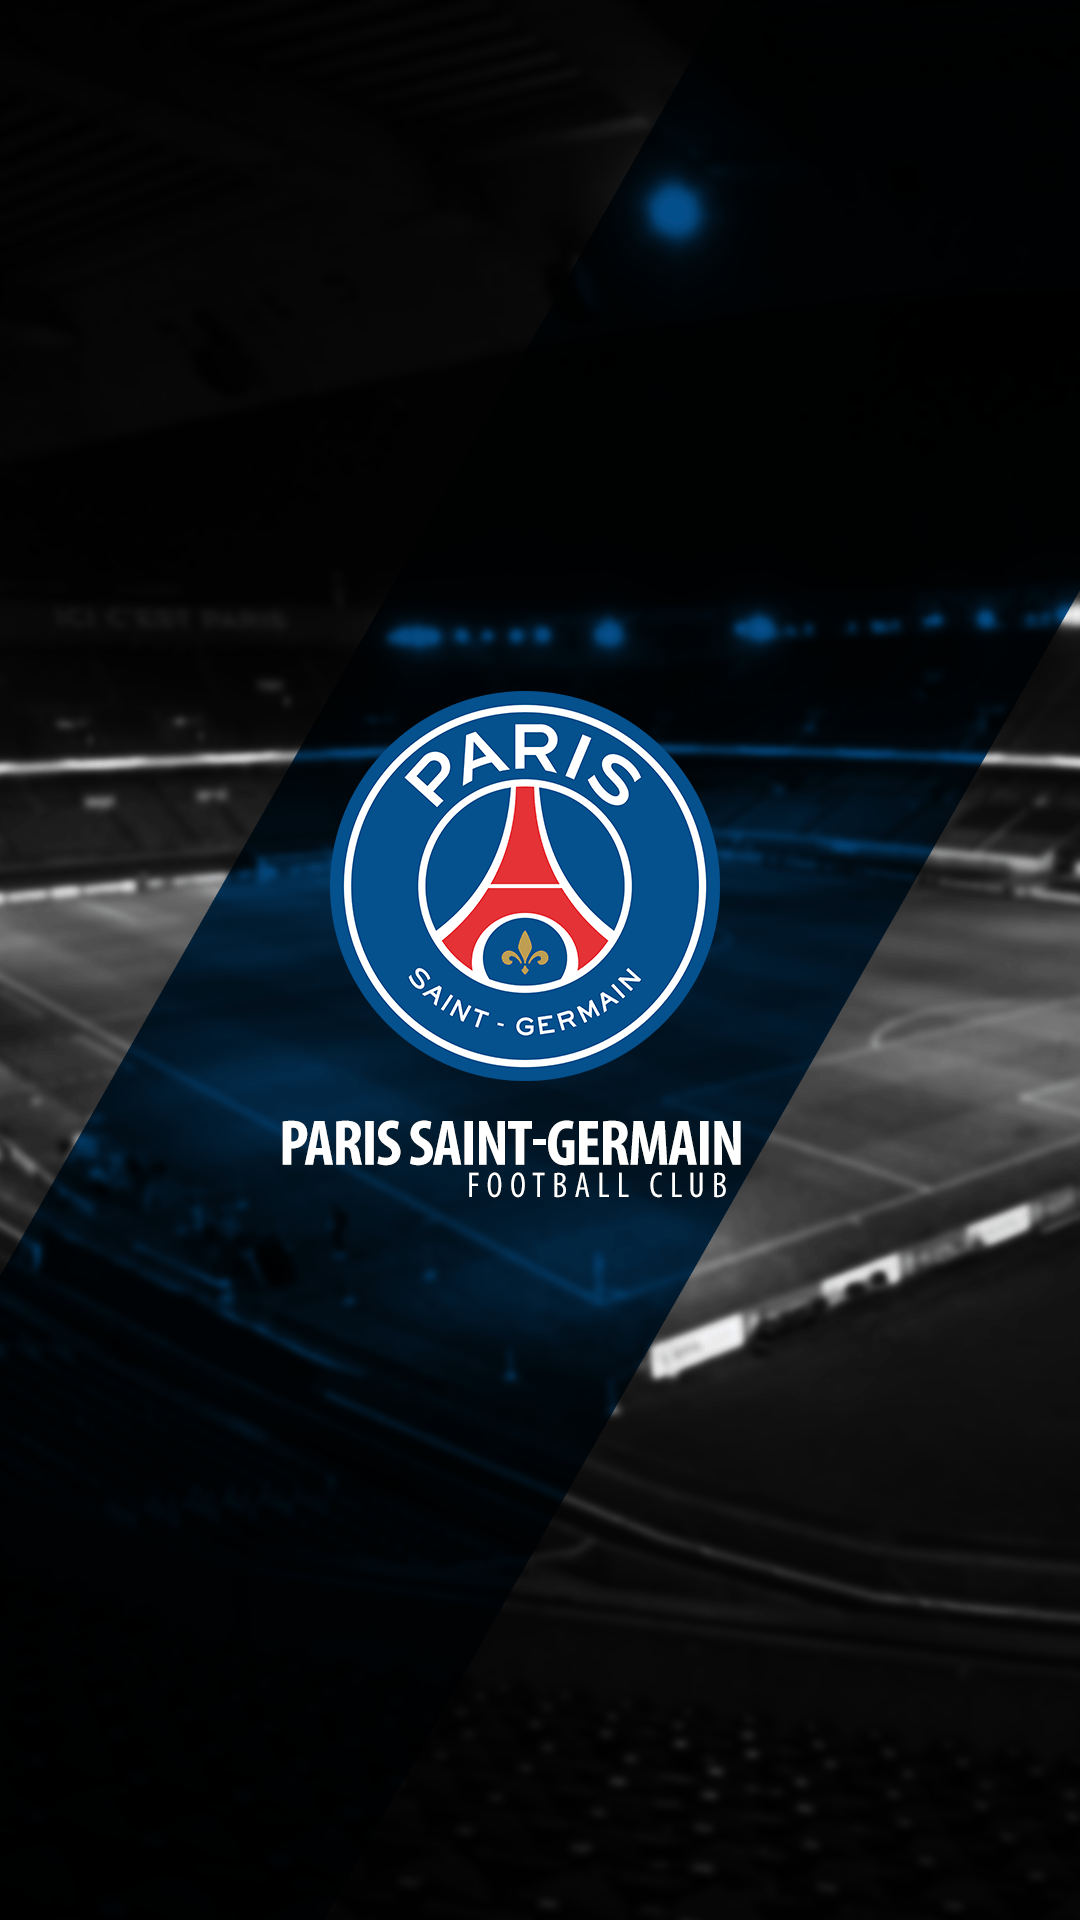 Paris Saint Germain Wallpaper iPhone - Best Wallpaper HD ...